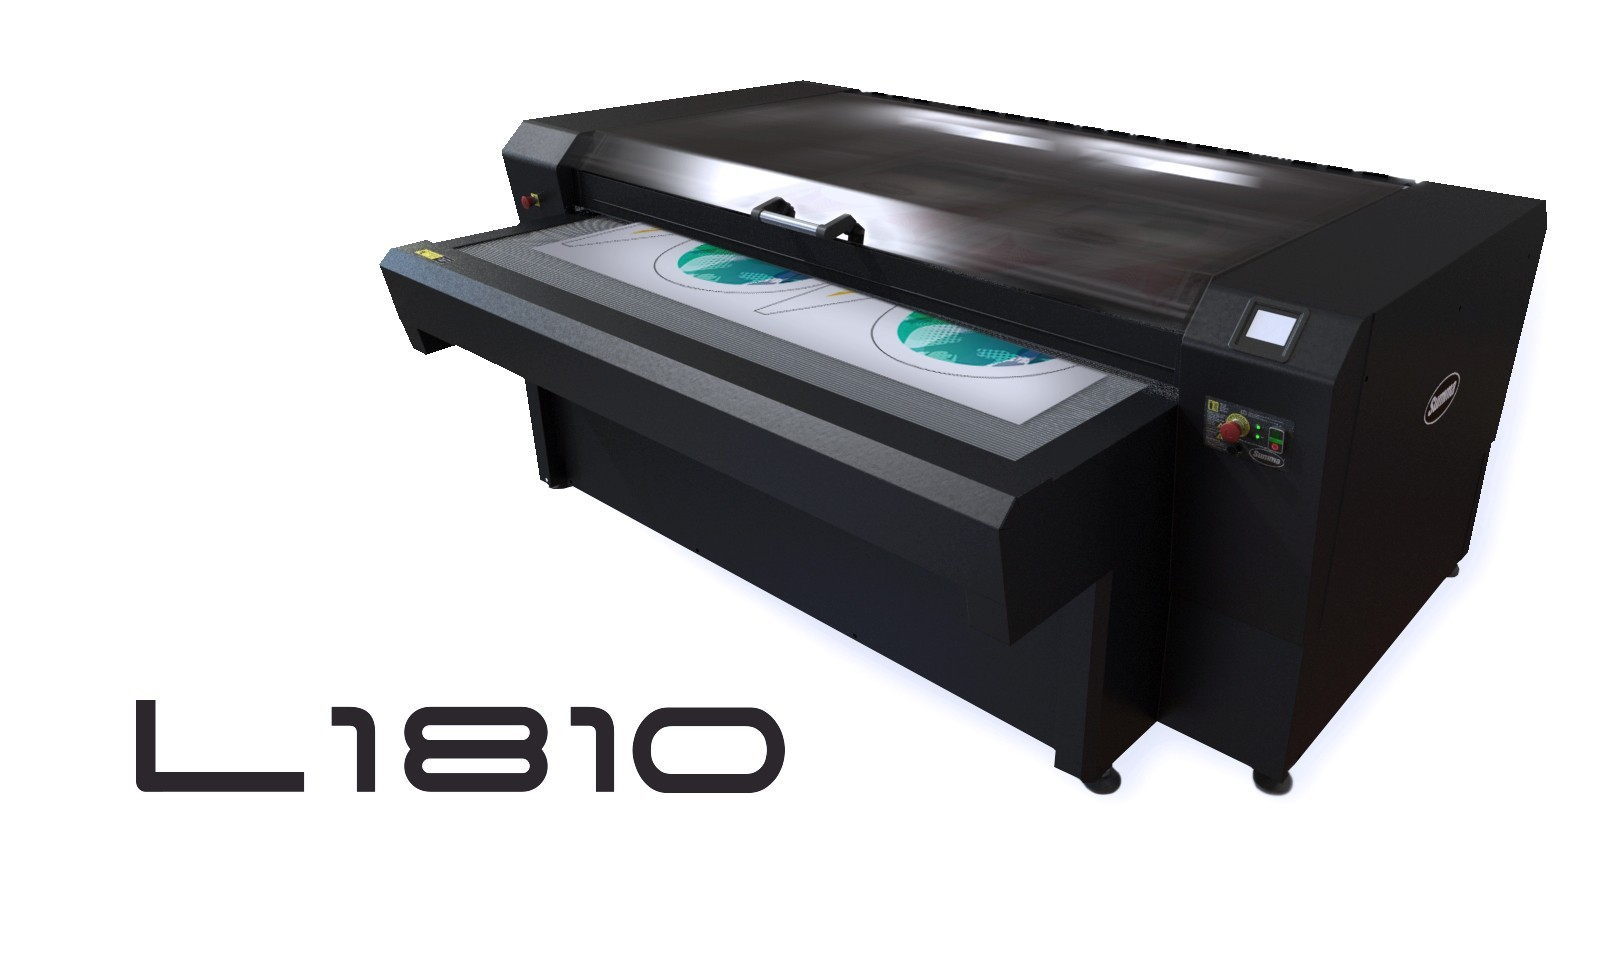 Summa introduces L1810 laser cutting system for the sports wear market